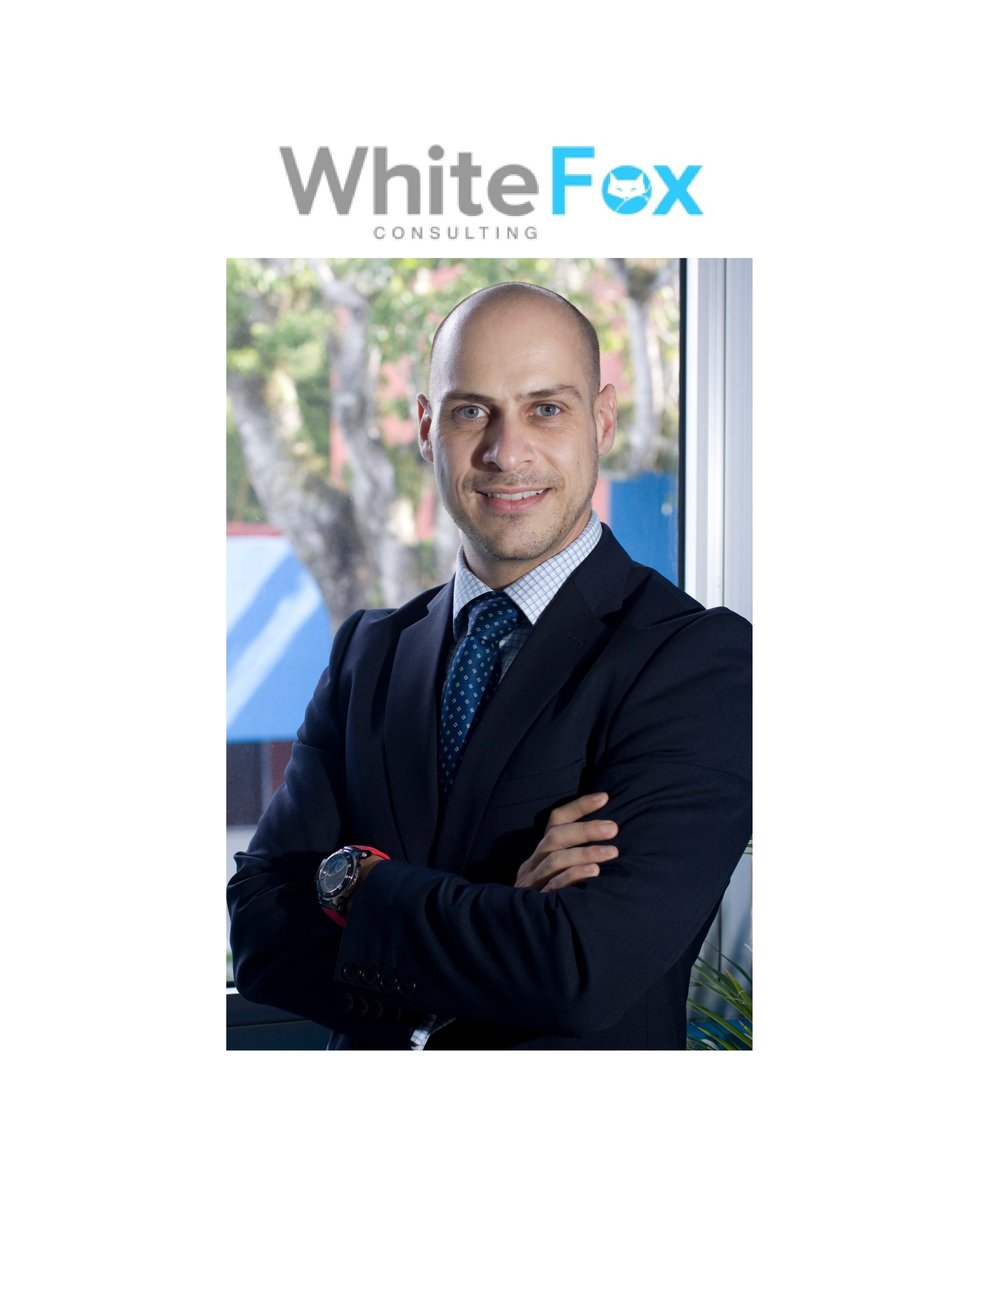 Mr. Ramón Candel, CEO and founder of White Fox Consulting.